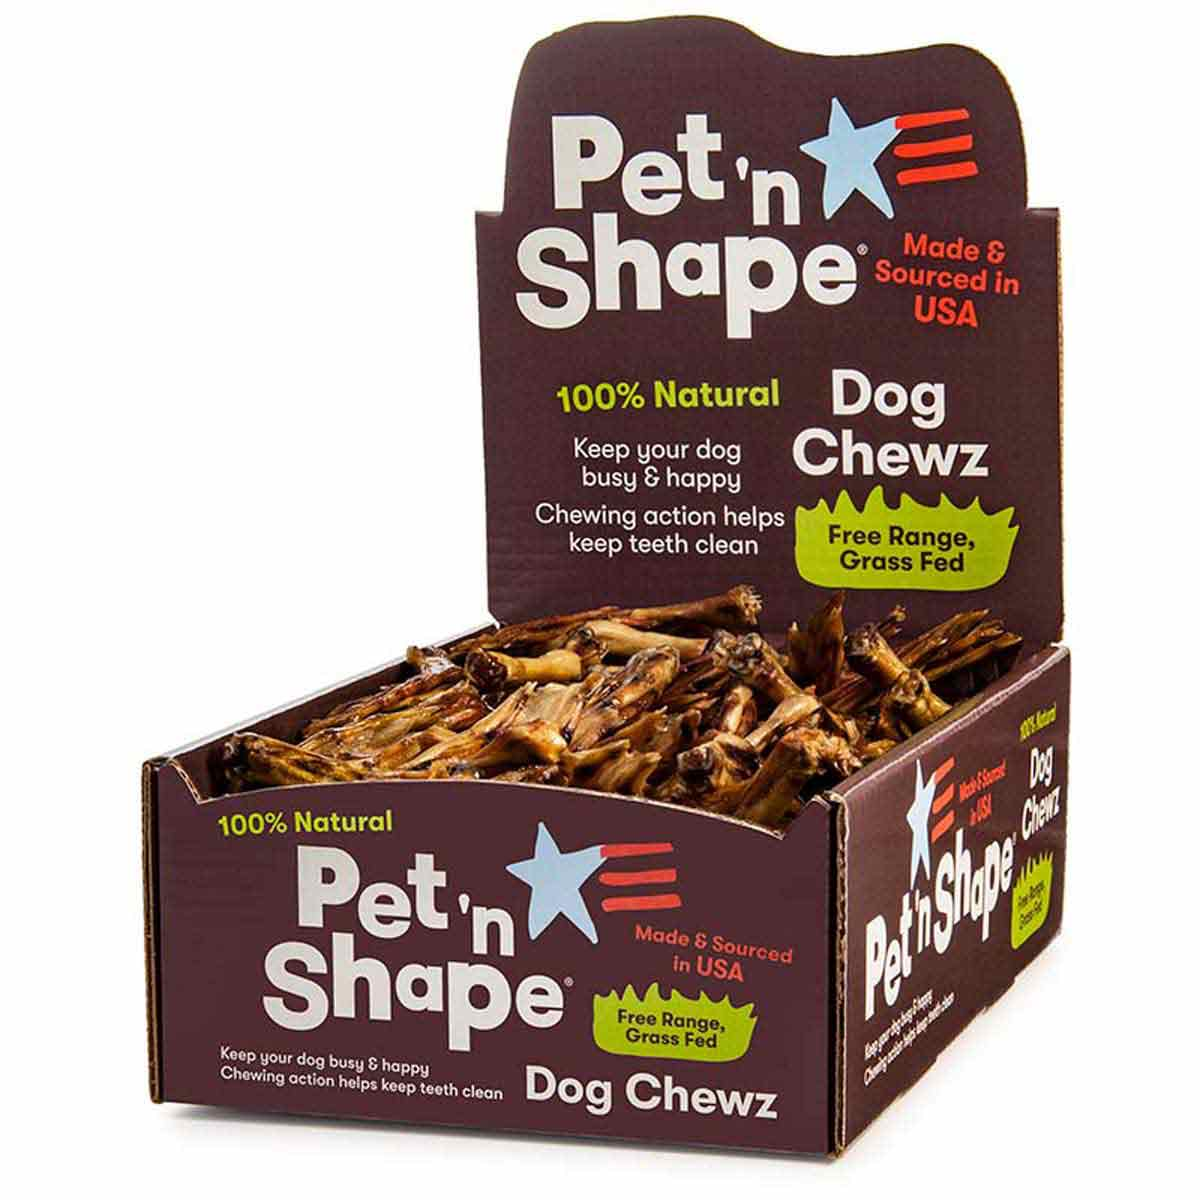 Pet 'n Shape All-Natural Dog Chewz Duck Feet Case of 100